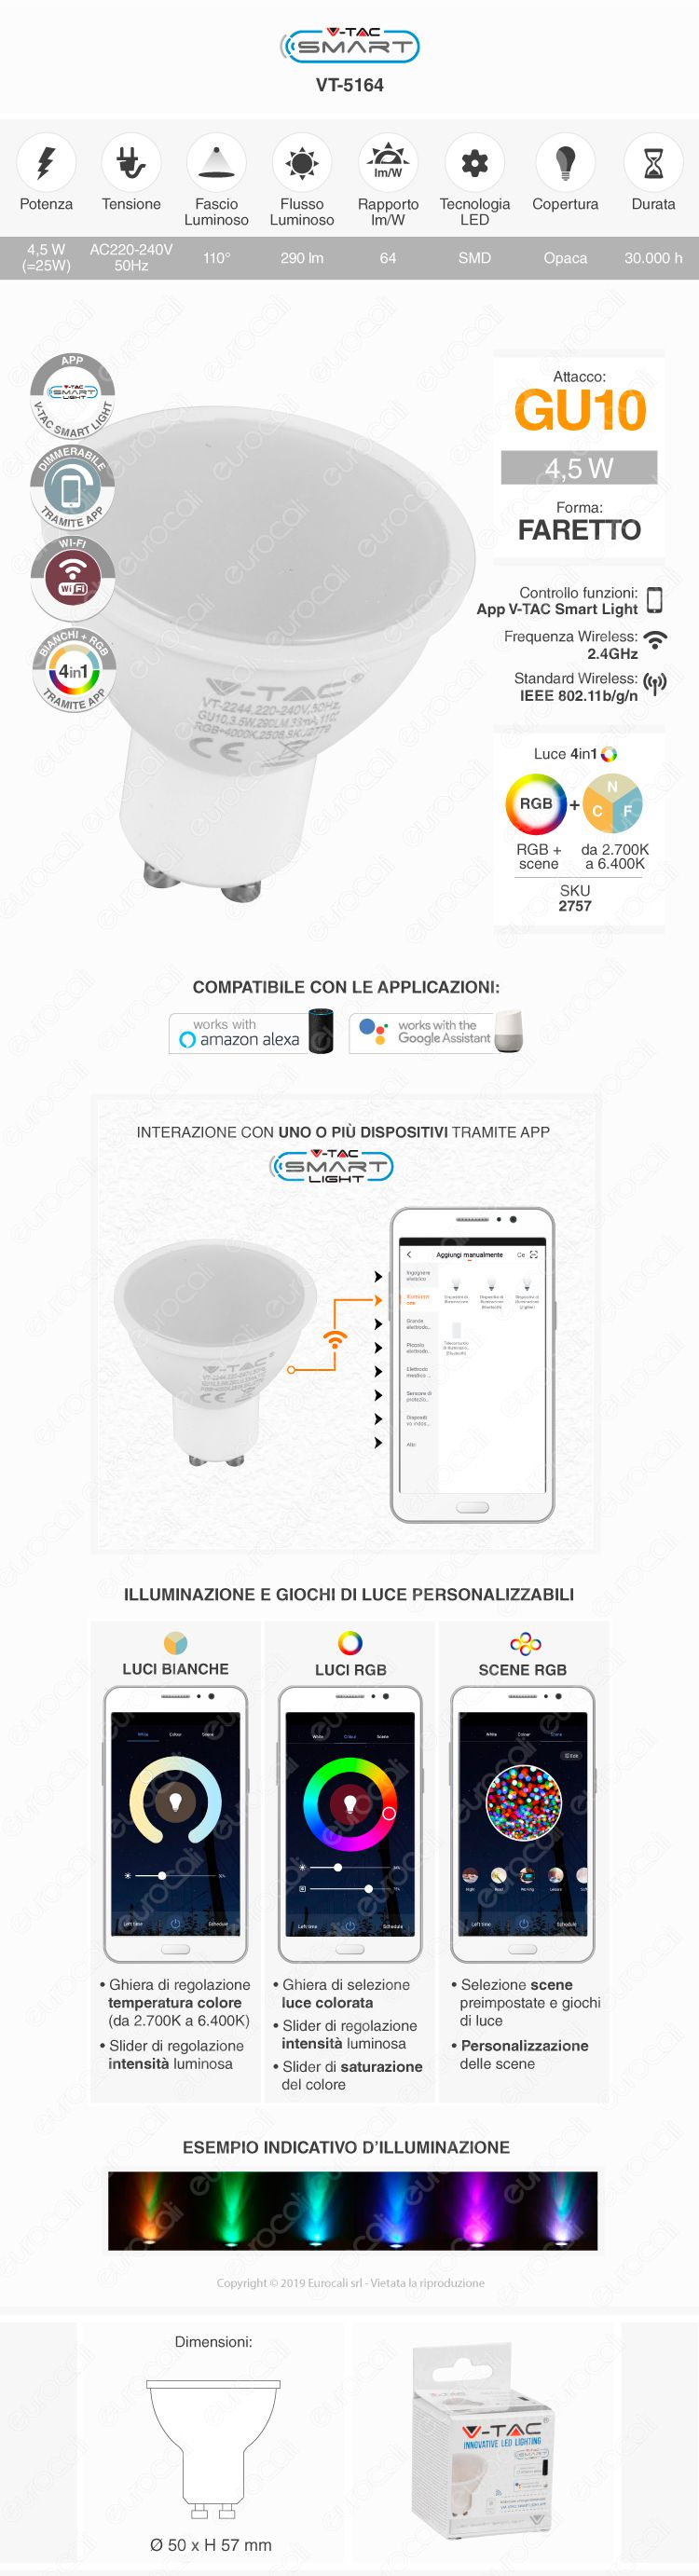 V-Tac Smart VT-5164 Lampadina LED Wi-Fi Faretto GU10 4,5W RGB+W Dimmerabile